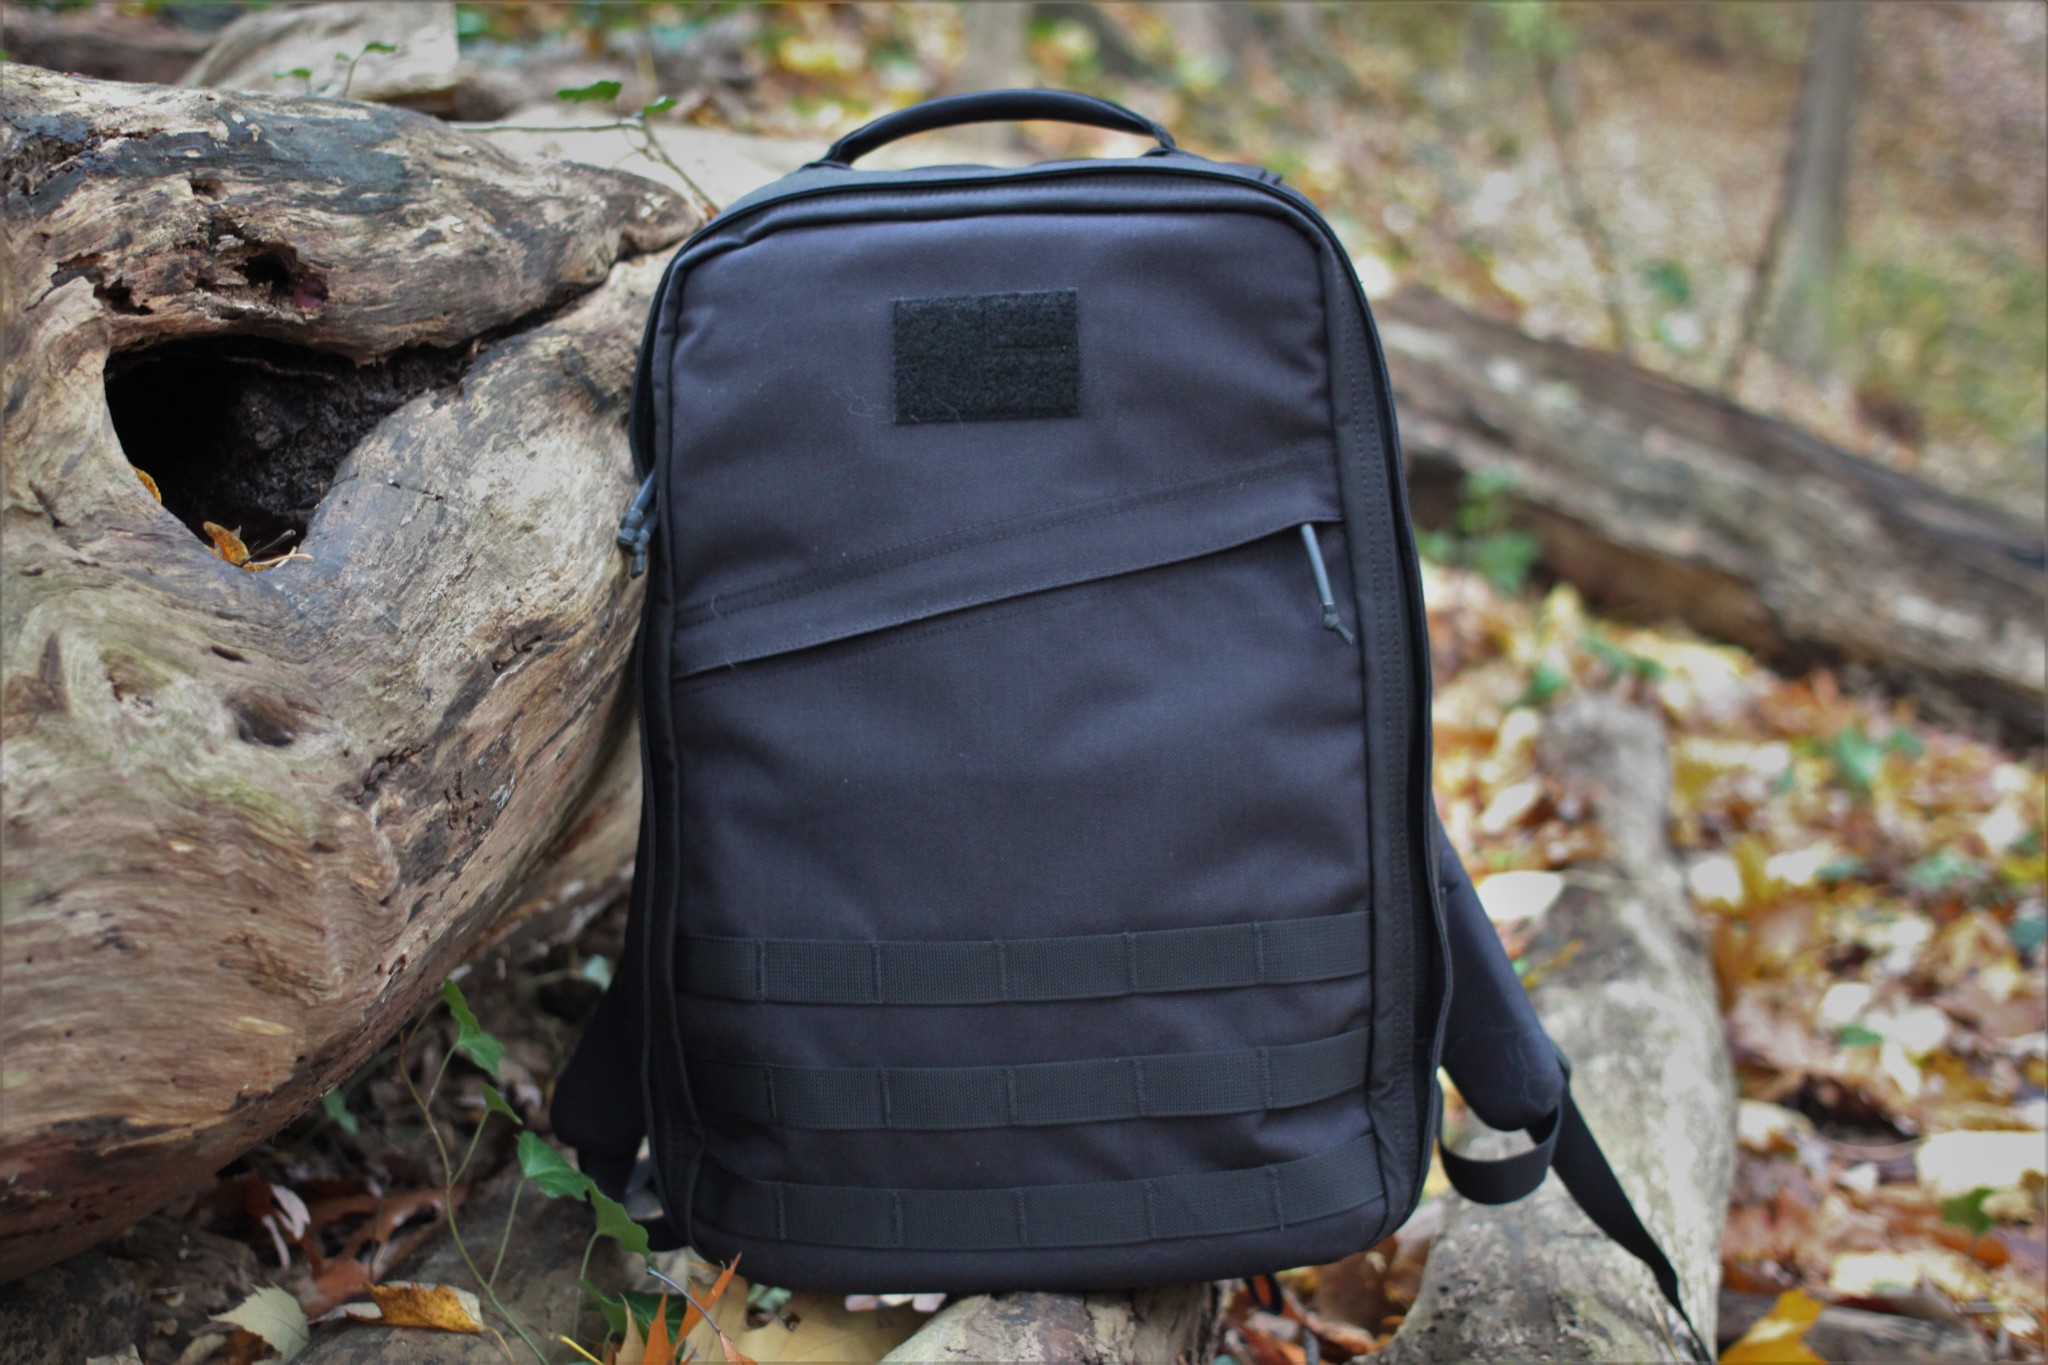 goruck gr1 review front of bag in forest